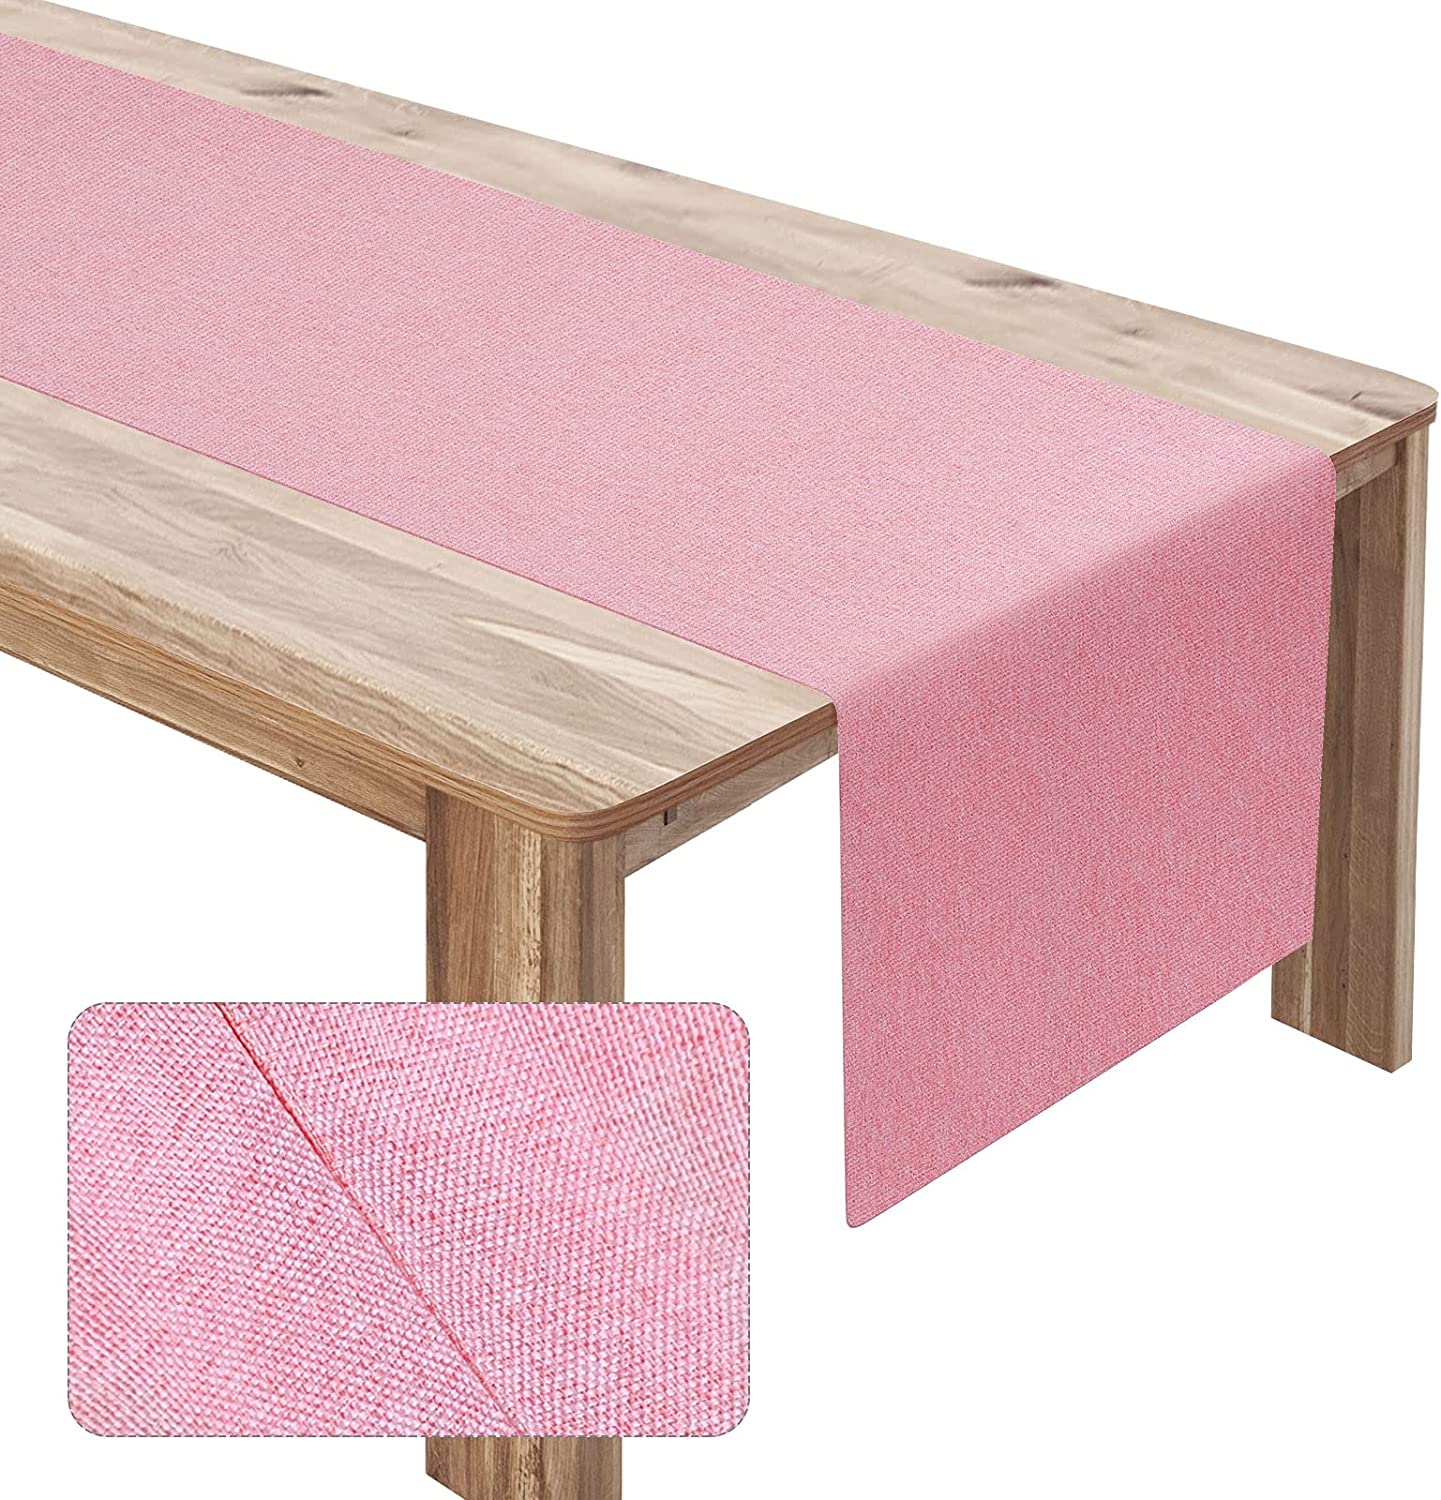 Ruisita Linen Table Runner Natural Fabric Modern Cotton Table Runners Pure Color Long Machine Washable Table Flag for Christmas Party Festival Decor (Pink)